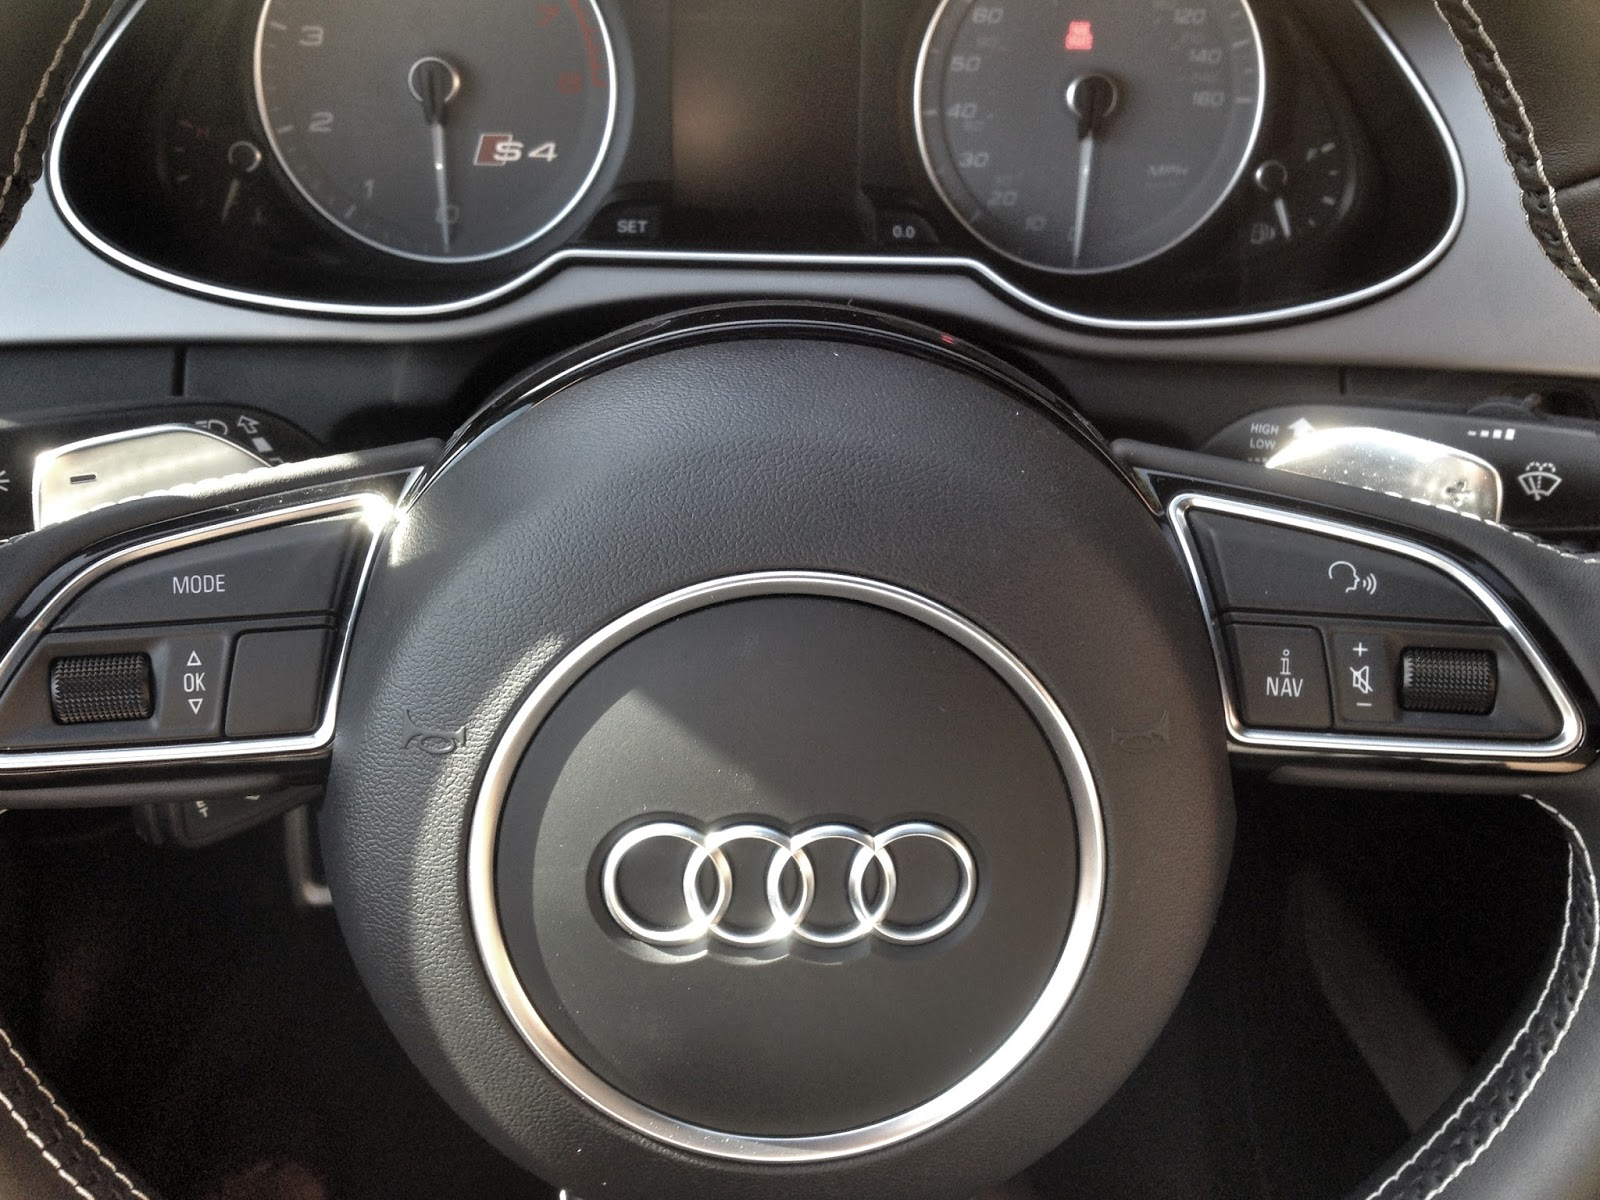 How To Use Audi Paddle Shifters The Unofficial Audi Blog